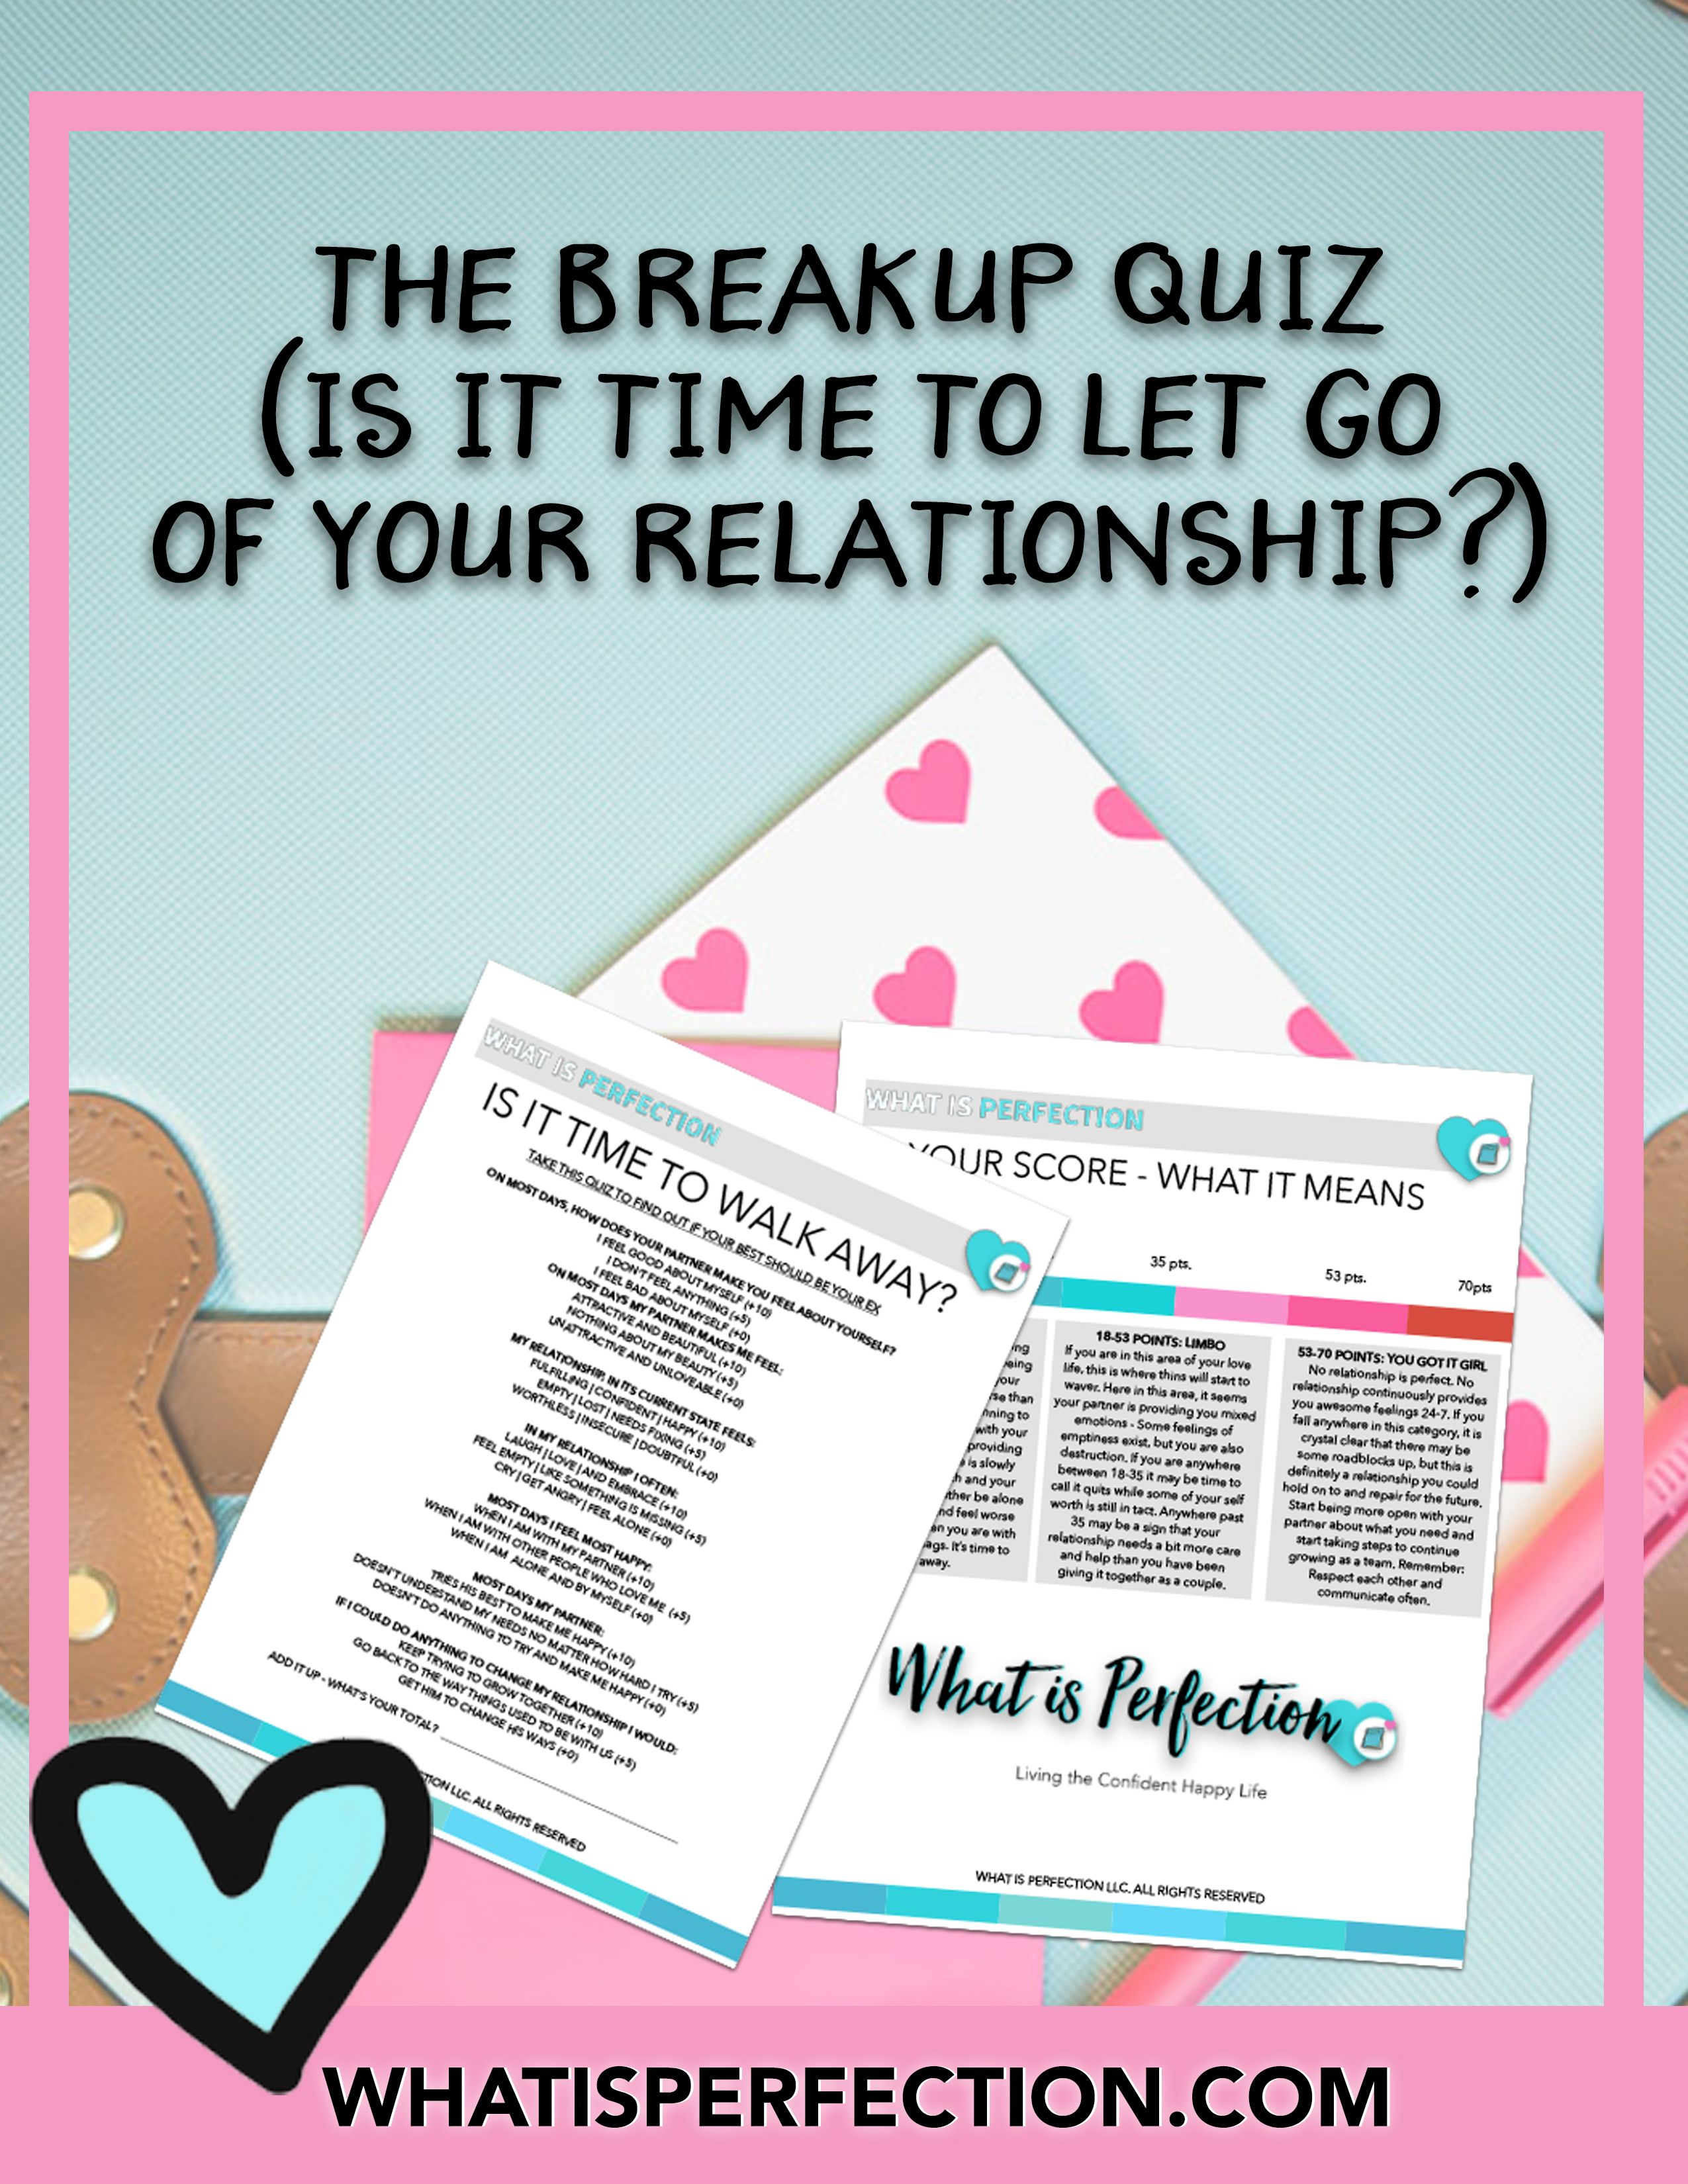 When to walk away from a relationship quiz